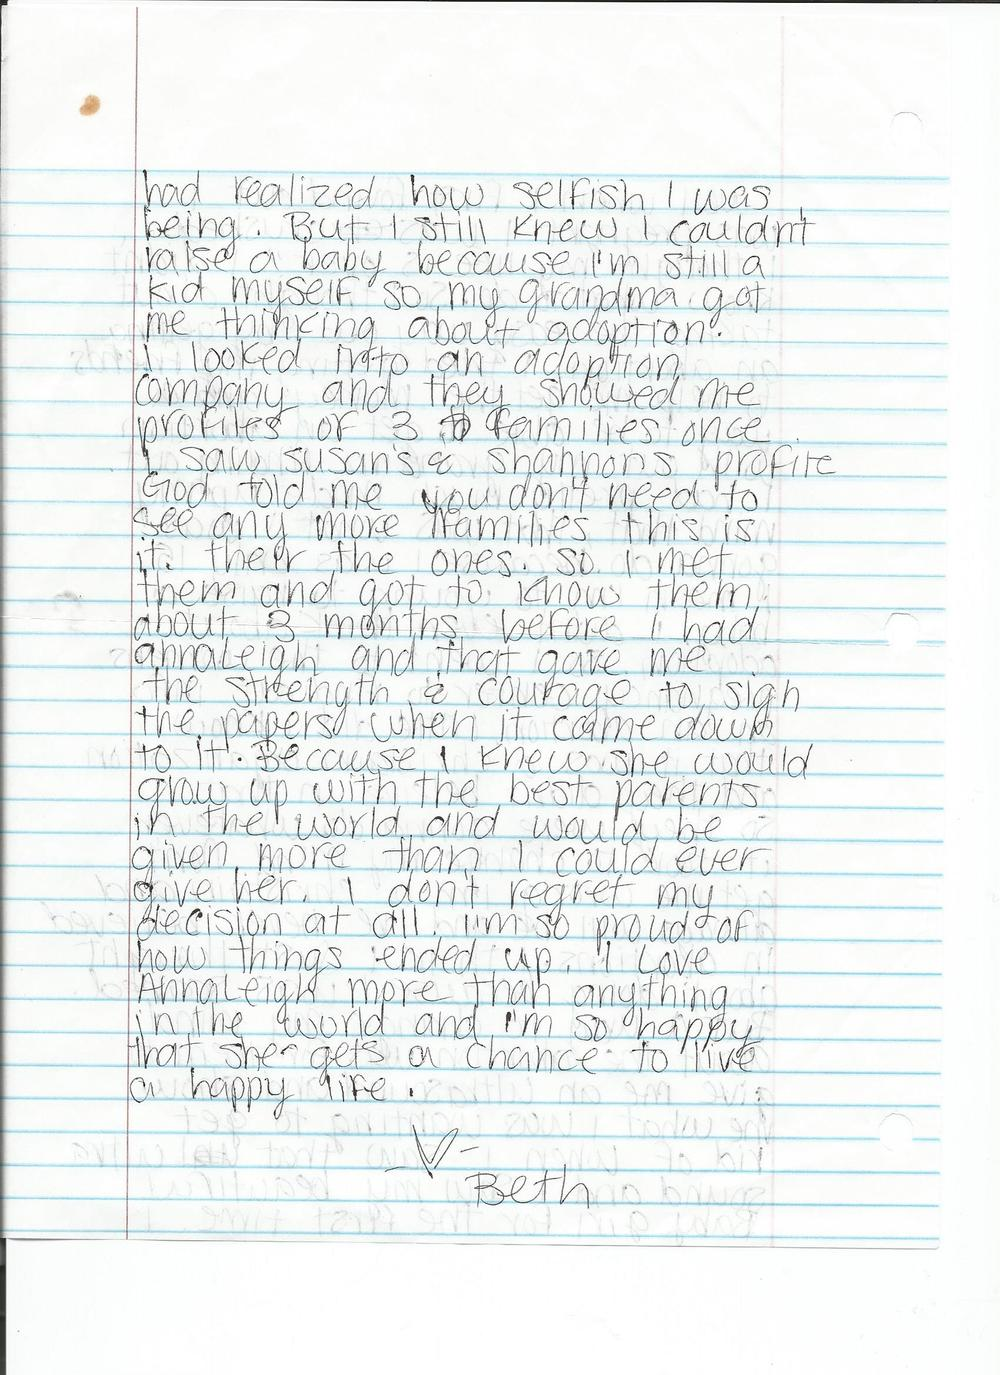 Beth letter about birth p2.jpg